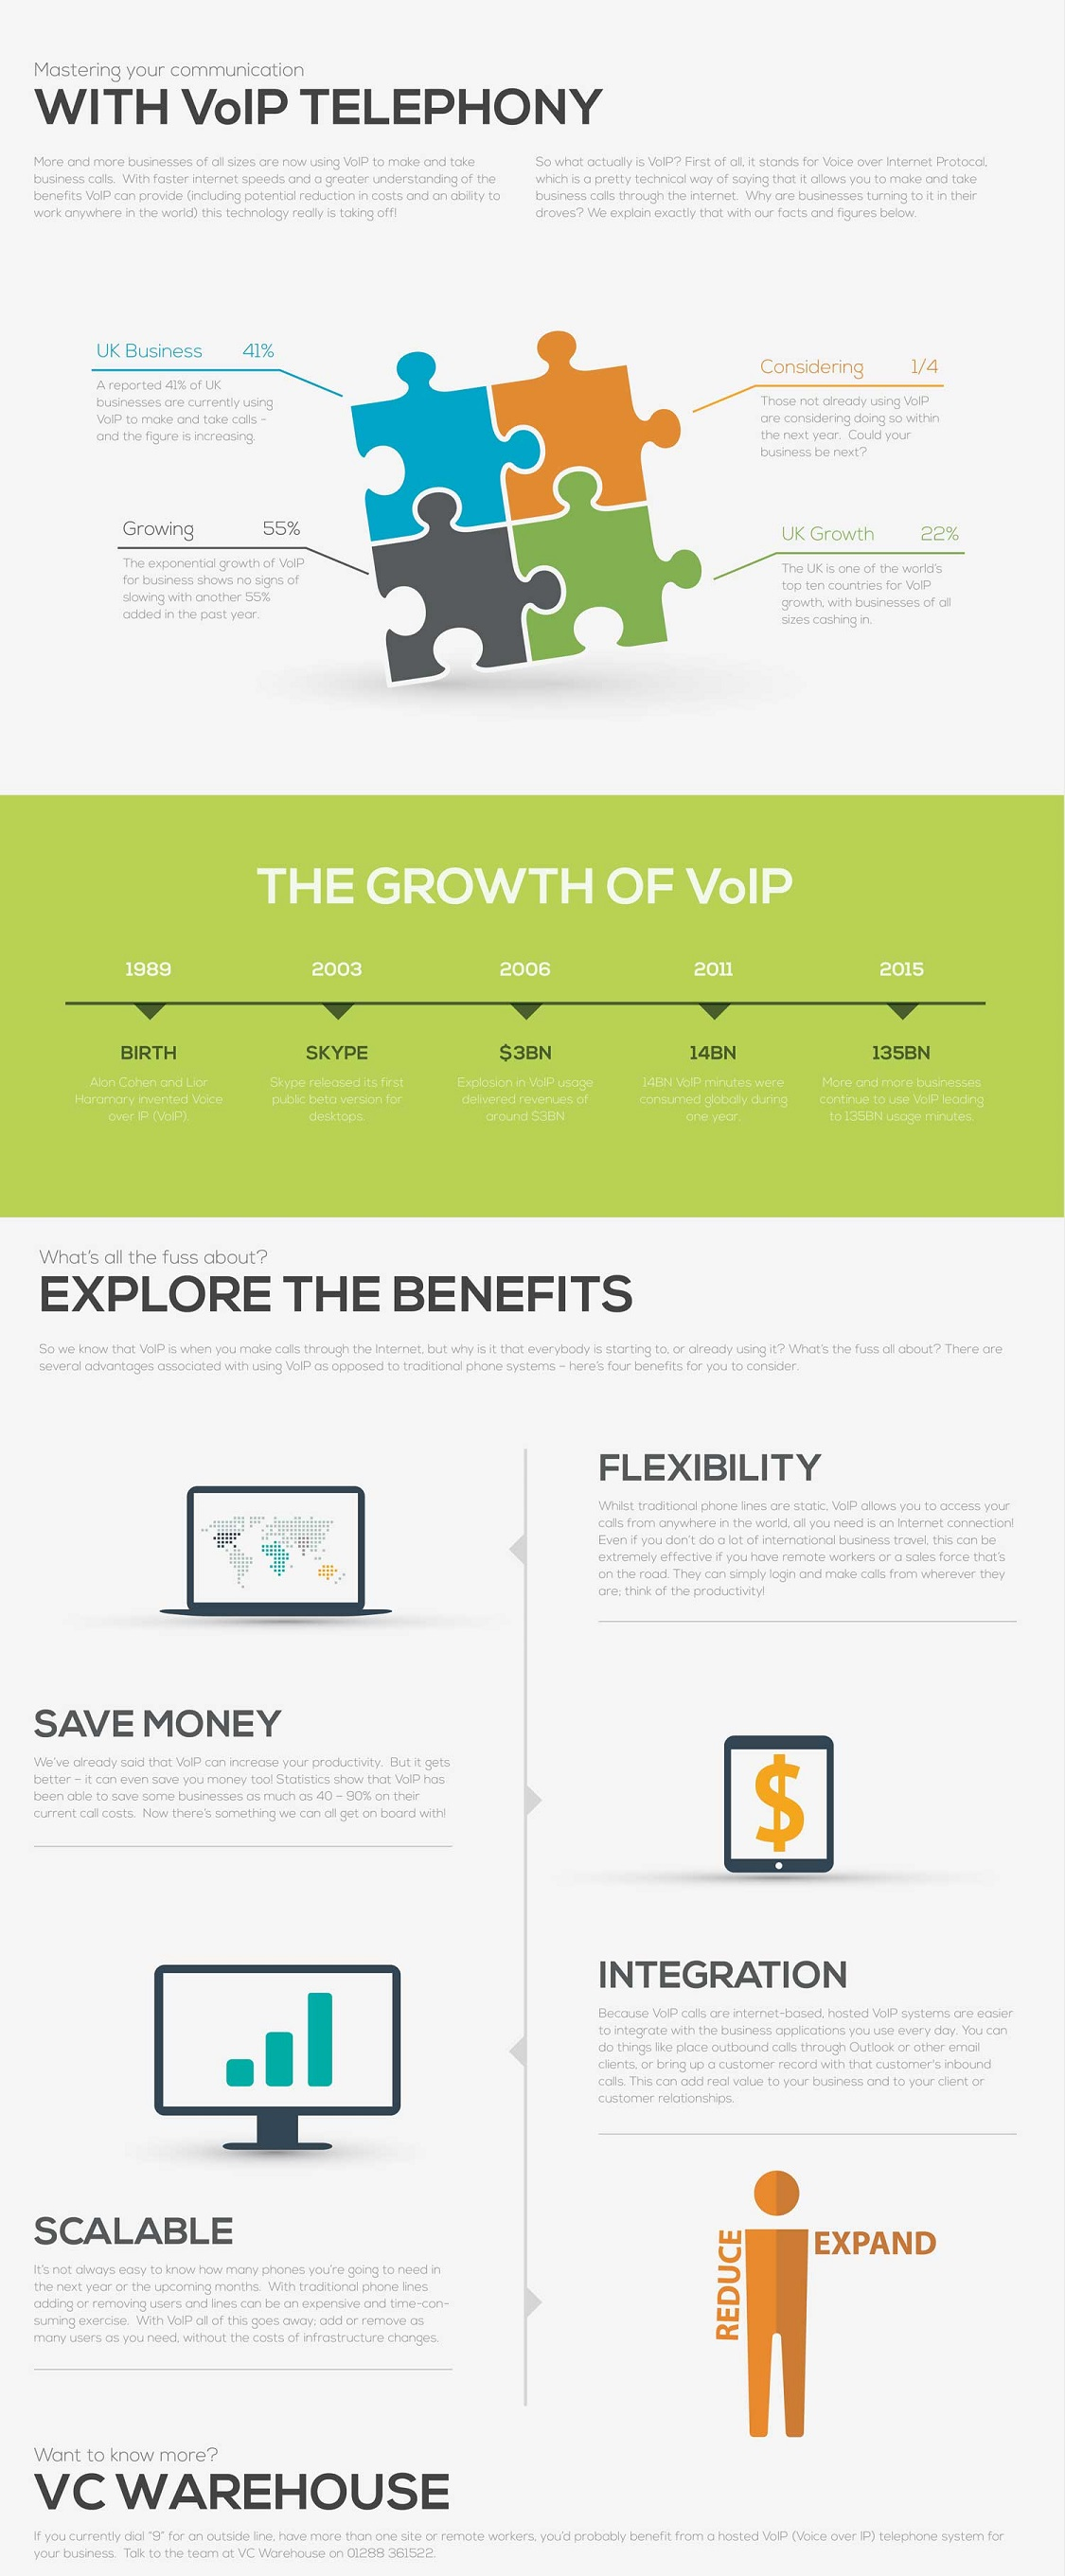 Top Benefits of VoIP Telephony infographic